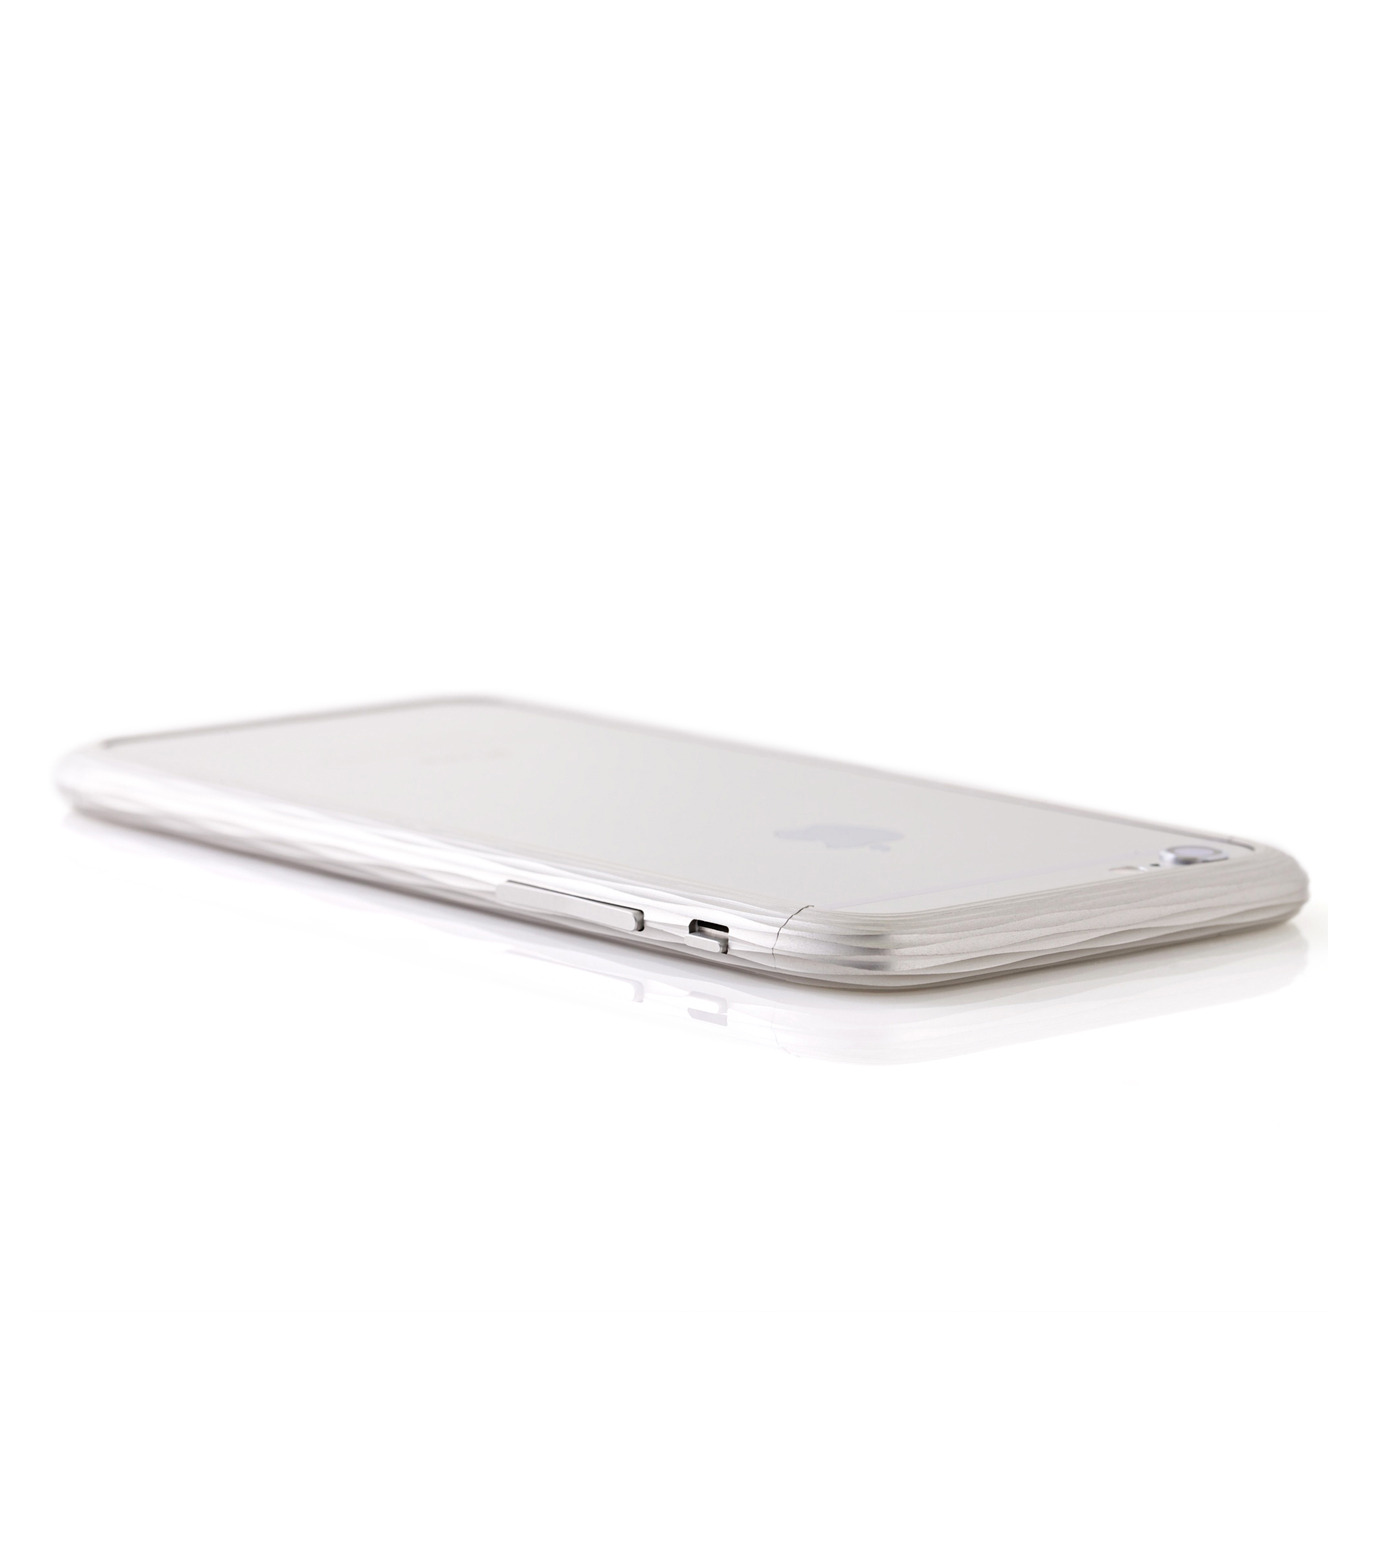 SQUAIR(スクエア)のThe Dimple for iPhone6-SILVER(ケースiphone6/6s/case iphone6/6s)-SQDMP620-SLV-1 拡大詳細画像3